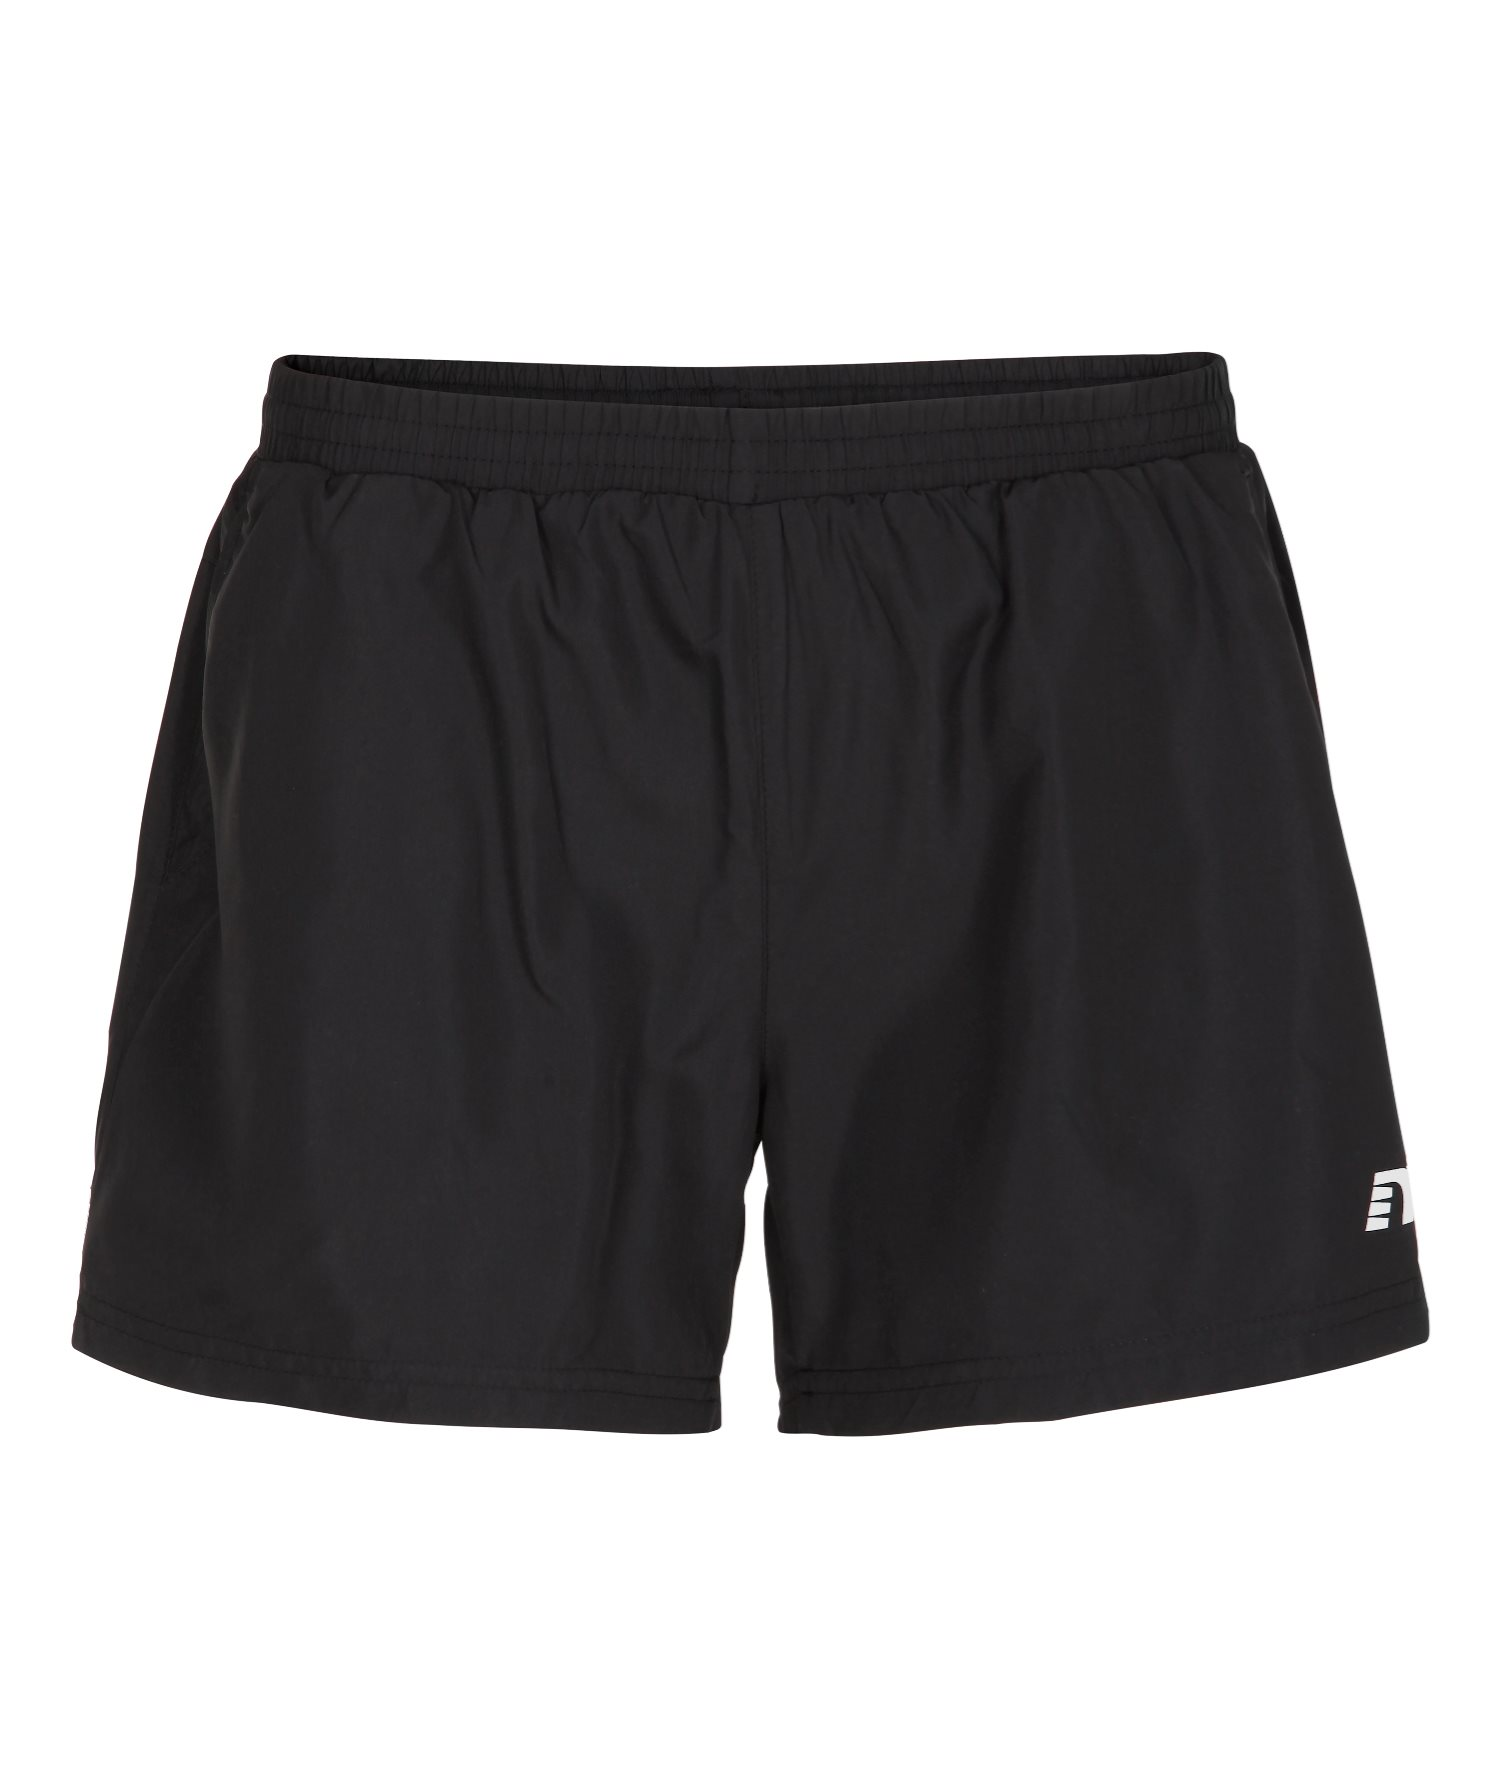 Newline Base Trail Shorts Herren